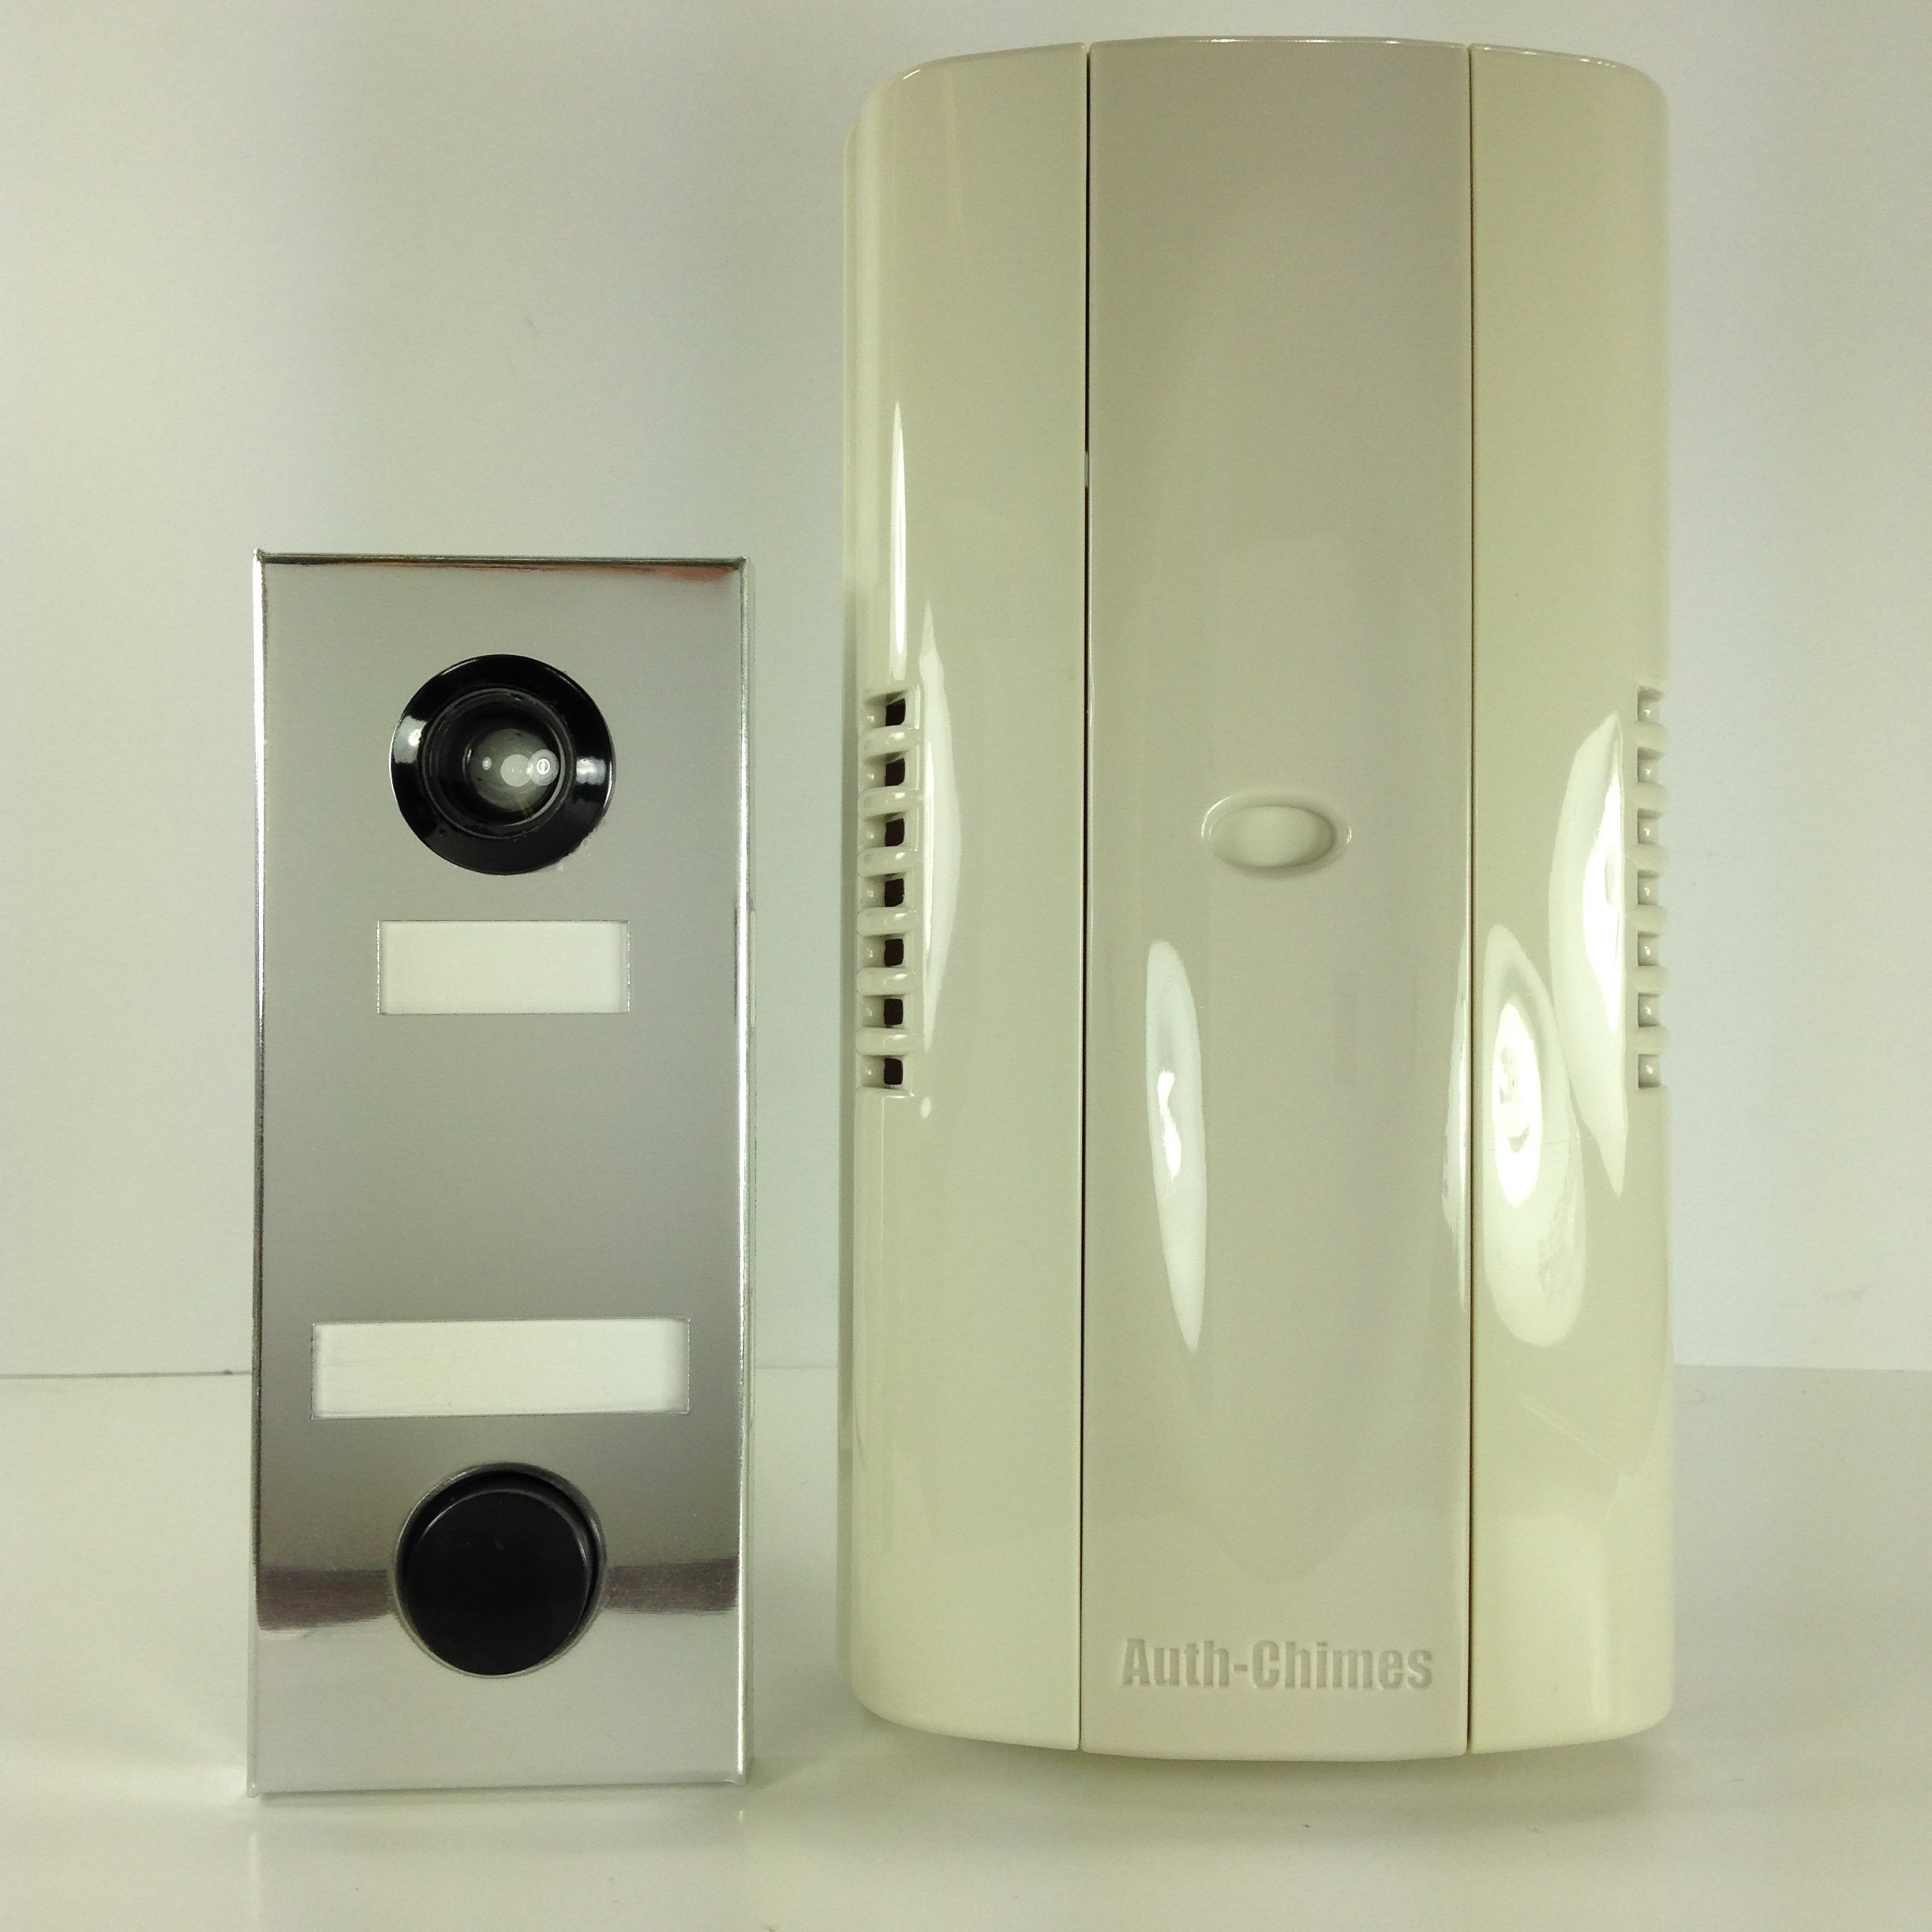 Auth Florence, Non Electric, Mechanical Door Chime, Doorbell and Viewer #686 (Mirror Silver)